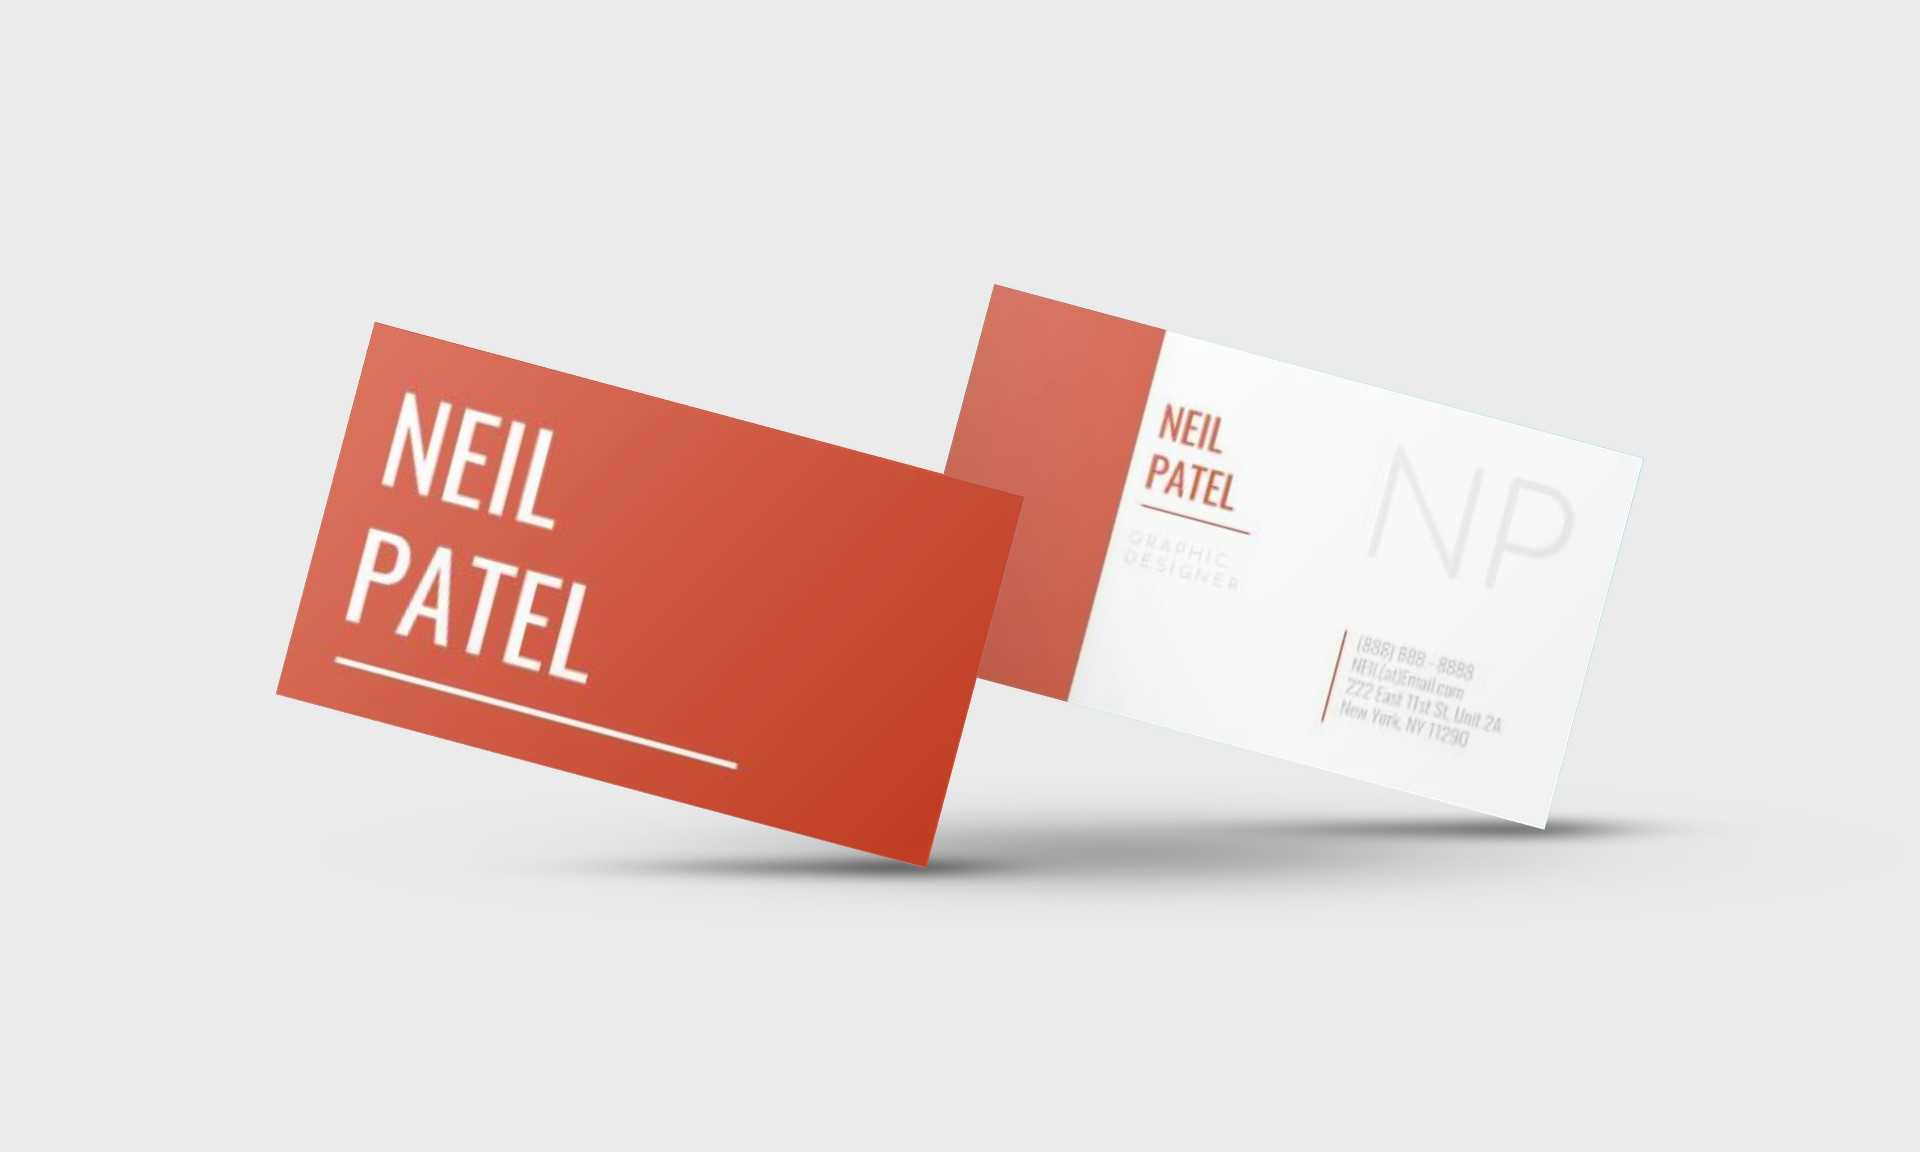 Neil Patel Google Docs Business Card Template - Stand Out Shop Regarding Google Docs Business Card Template